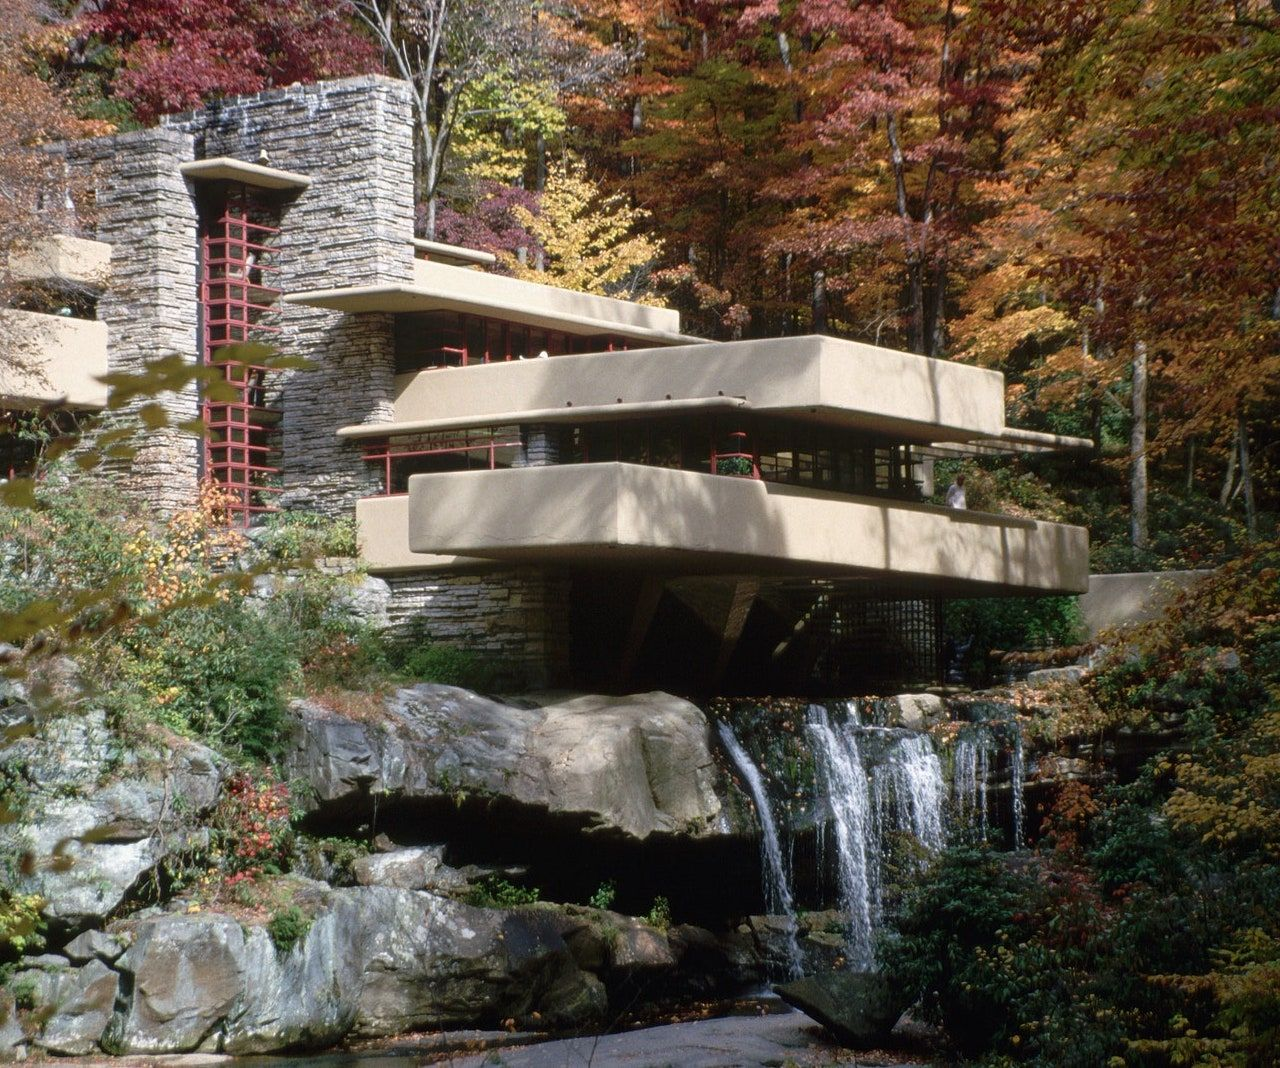 Frank Lloyd Wright's Fallingwater, Mill Run Pennsylvania, USA  We love to travel the world, pick out architectural classics, stay in design inspired hotels and review major exhibitions. Discover inspiring Arts, Culture, Travel, Design and more at www.cellophaneland.com   #cellophaneland #archilovers #arquitetura #architecturelovers  #architecturephotography  #architectureporn #modernarchitecture  #architecturedesign  #midcenturyarchitecture #modernism #midcenturymodern #moderndesign